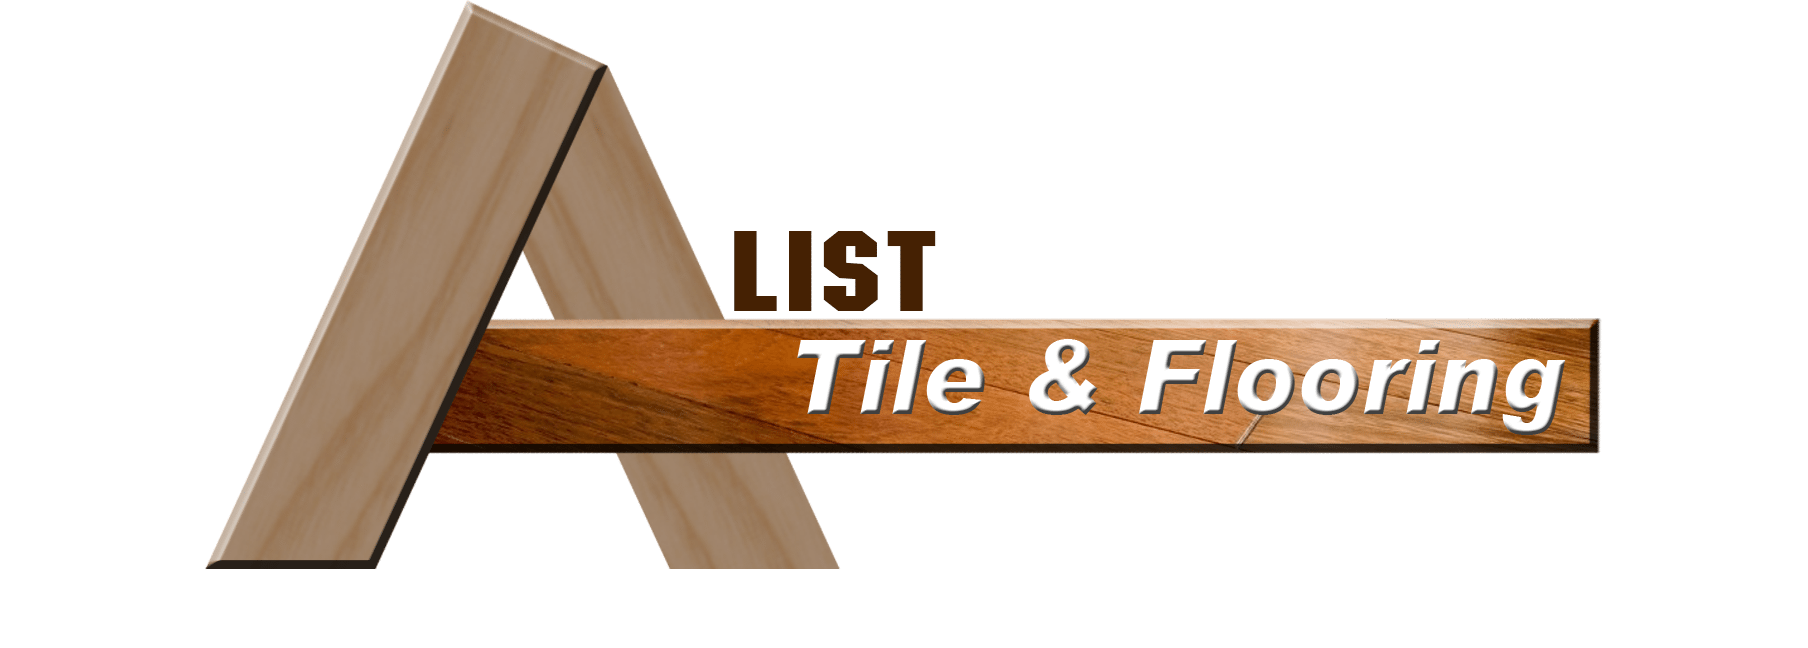 A-List Tile & Flooring